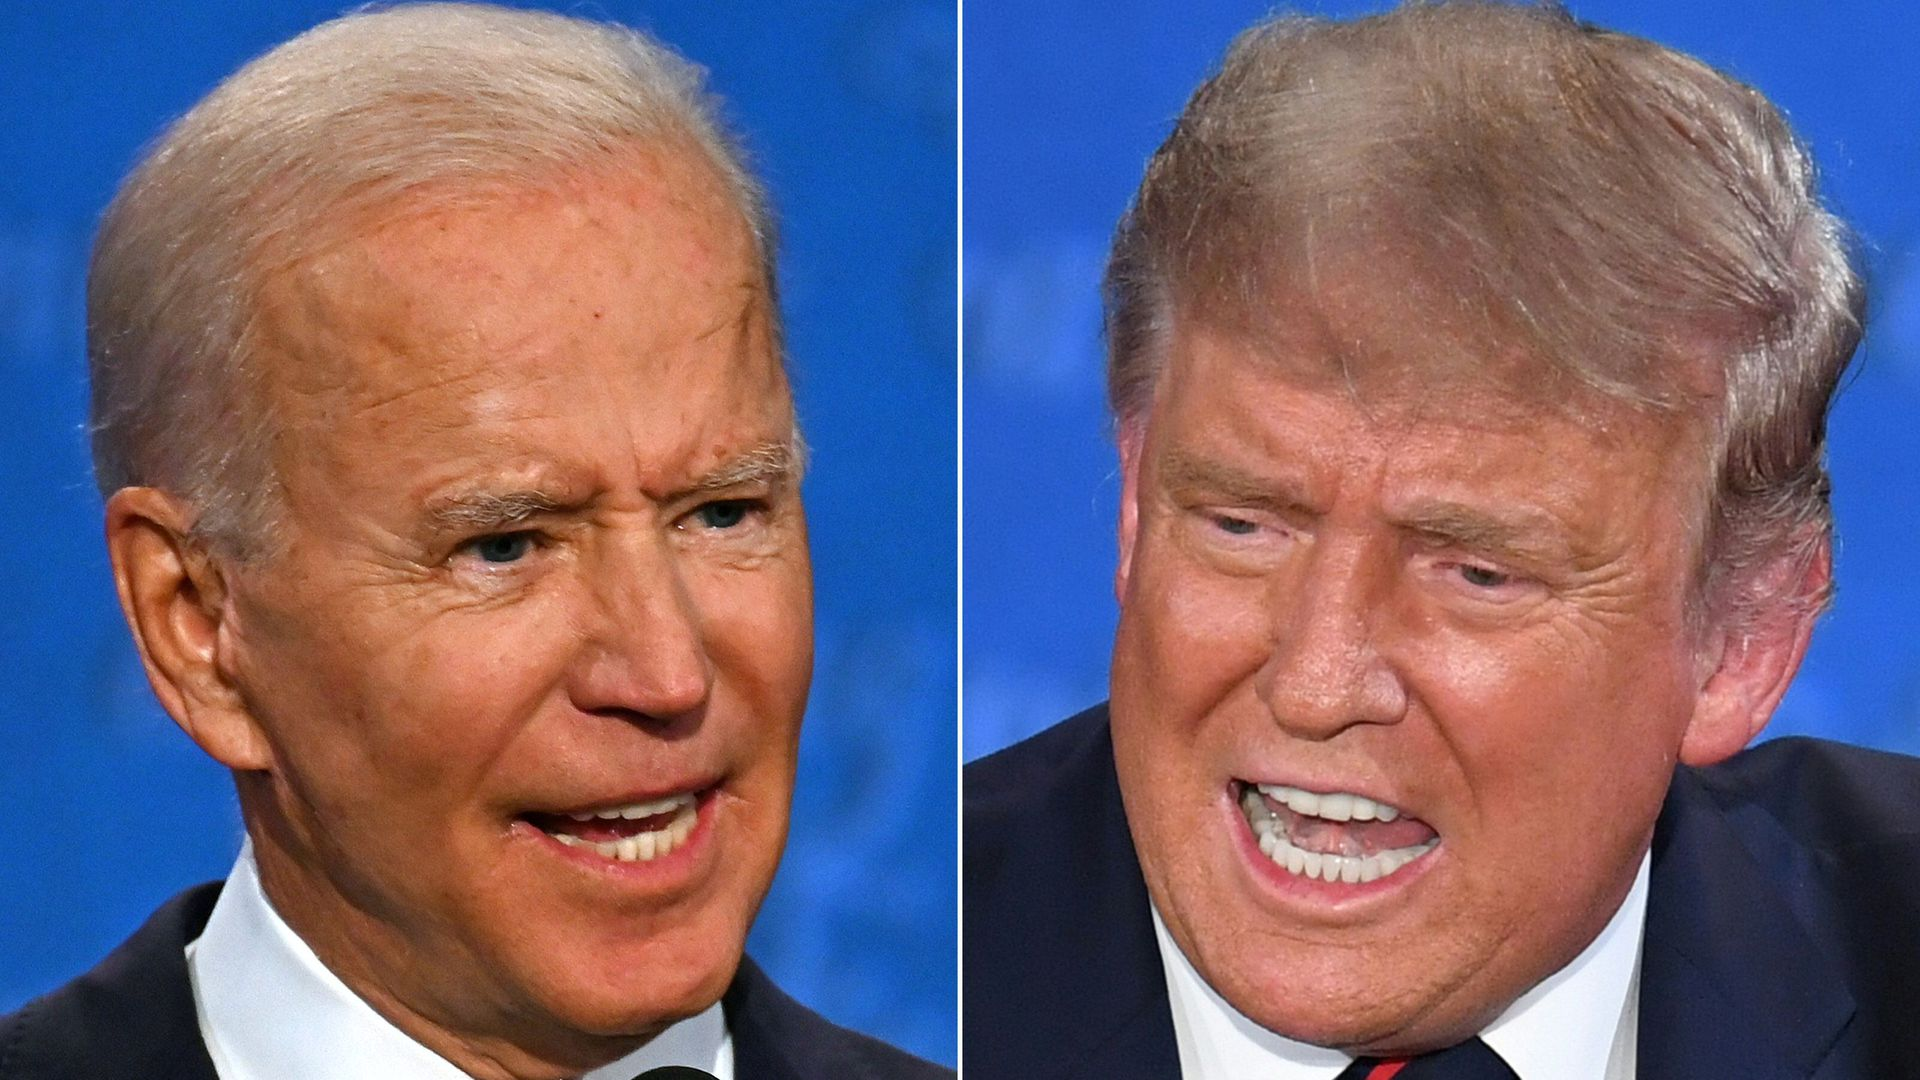 Polls: Biden's lead over Trump extends to double digits with 30 days until  election - Axios